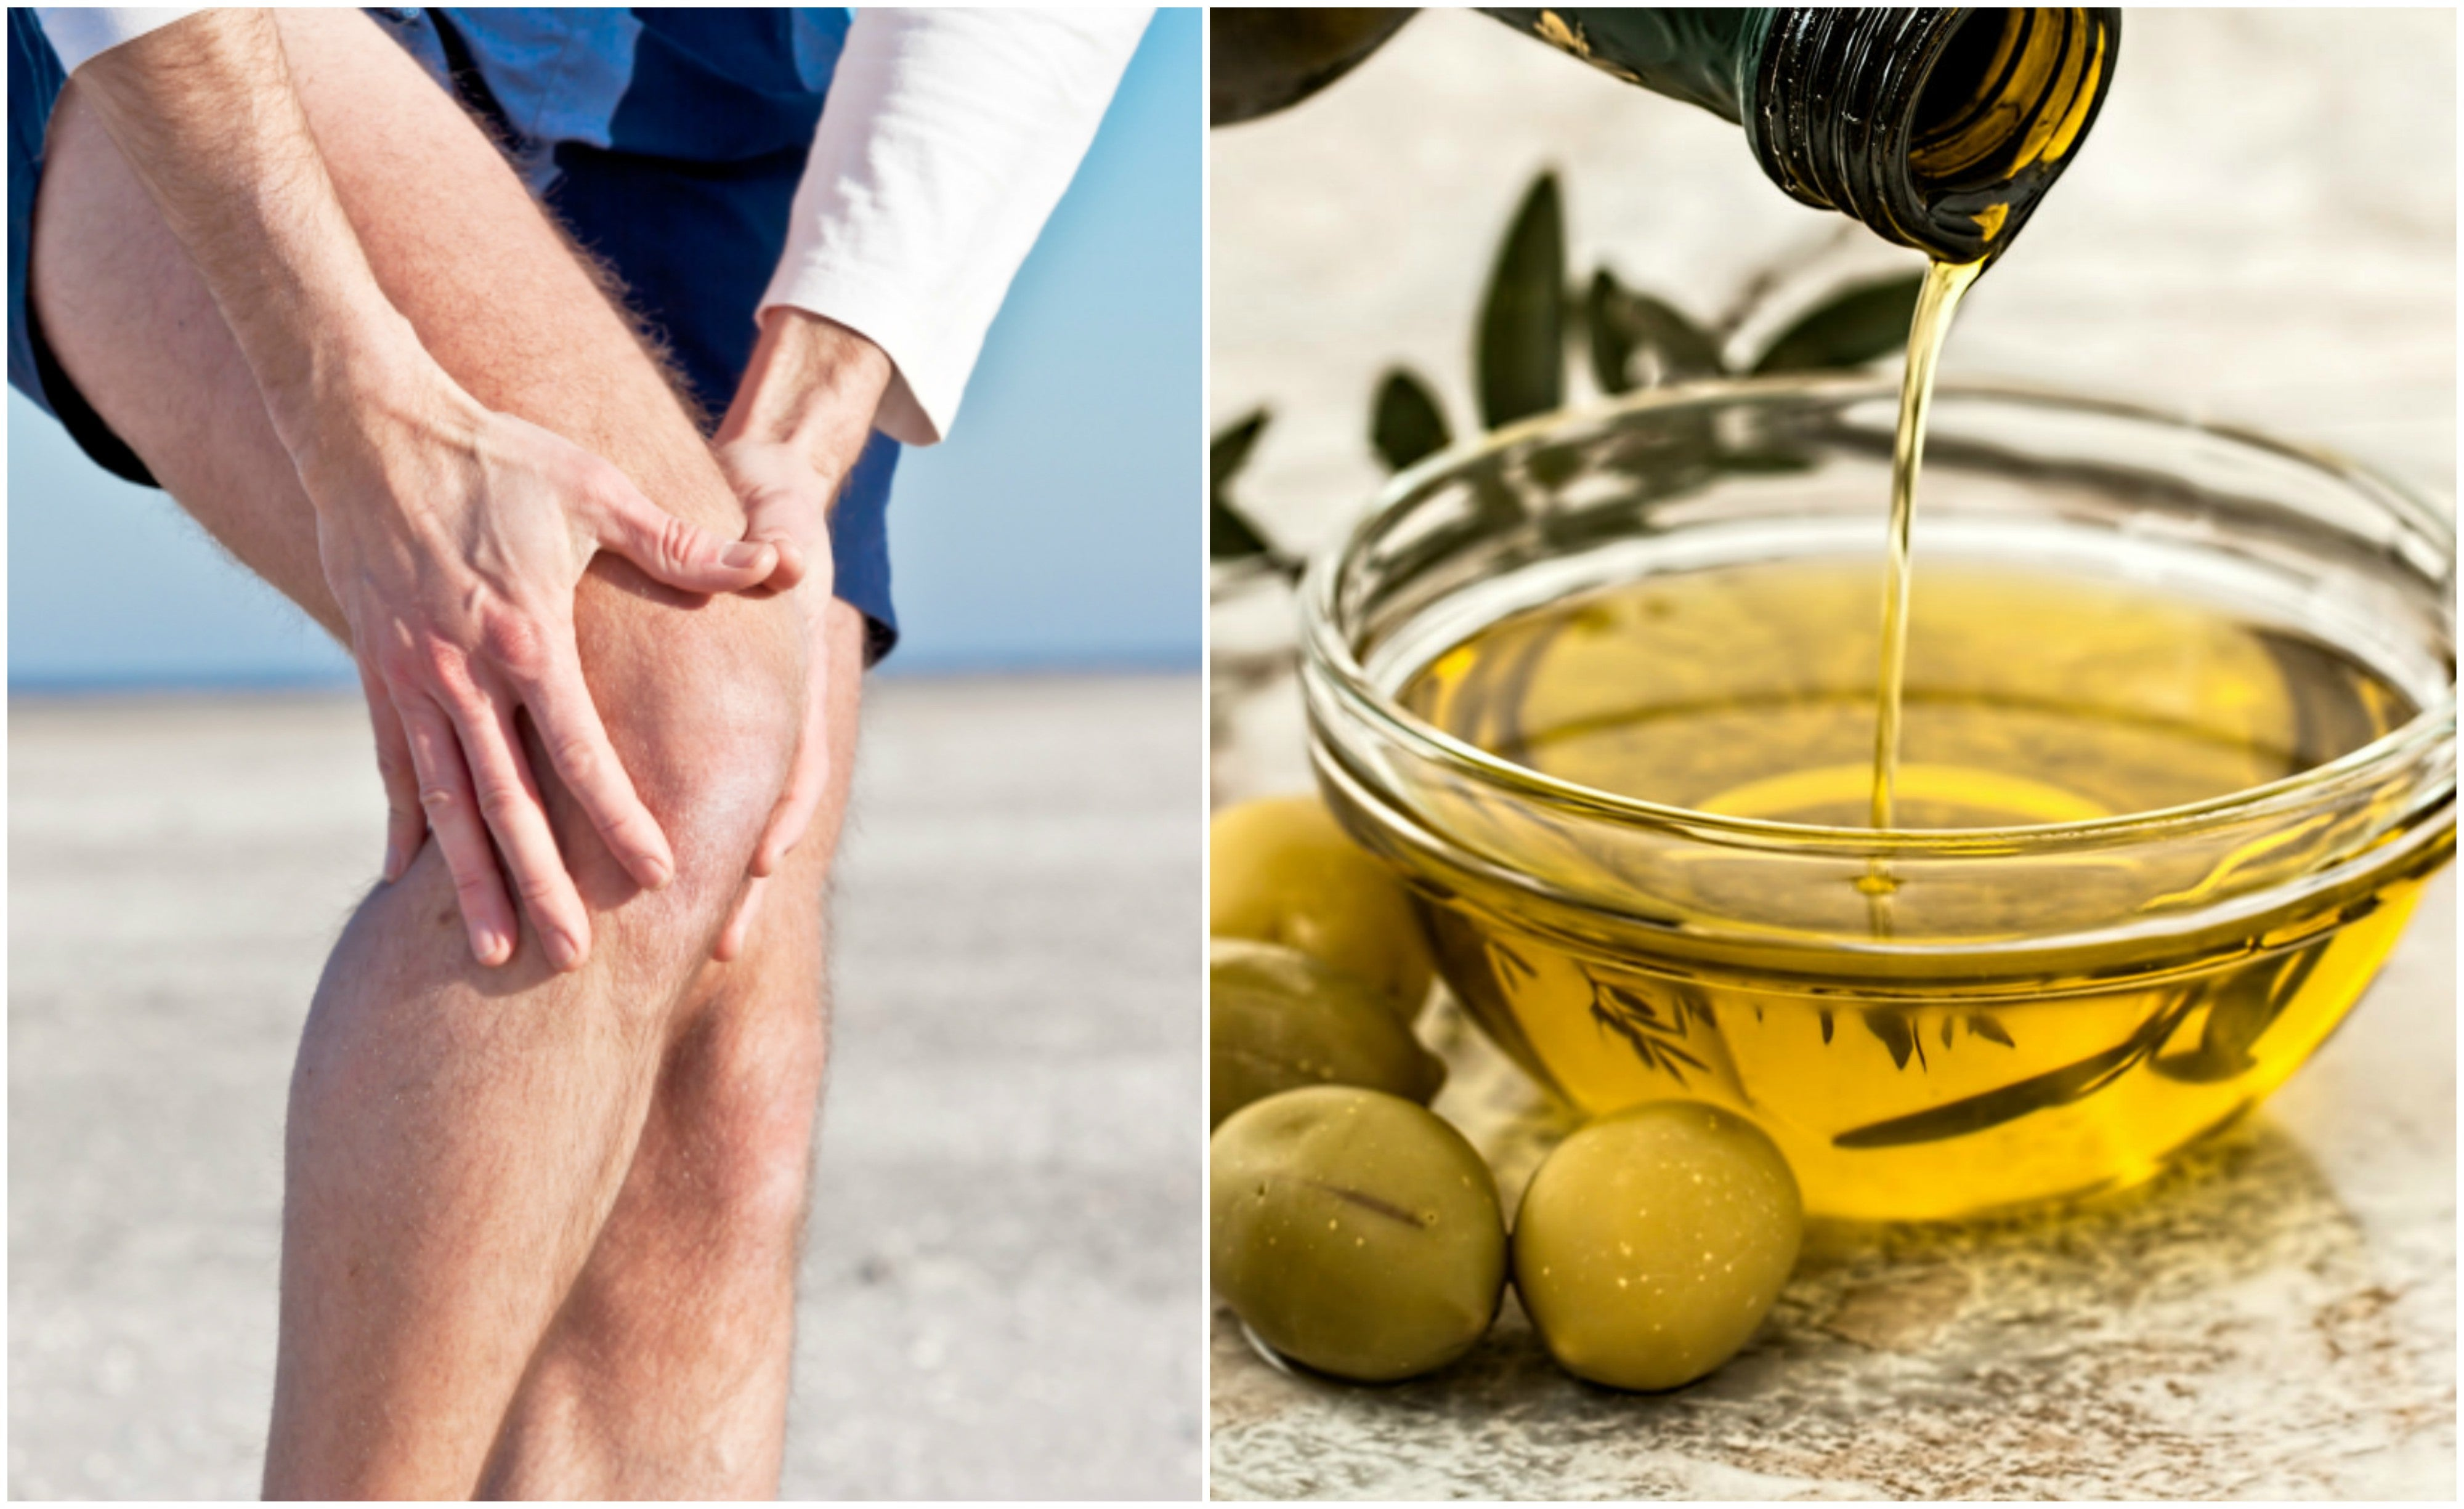 cooking with olive oil, provide benefits to health